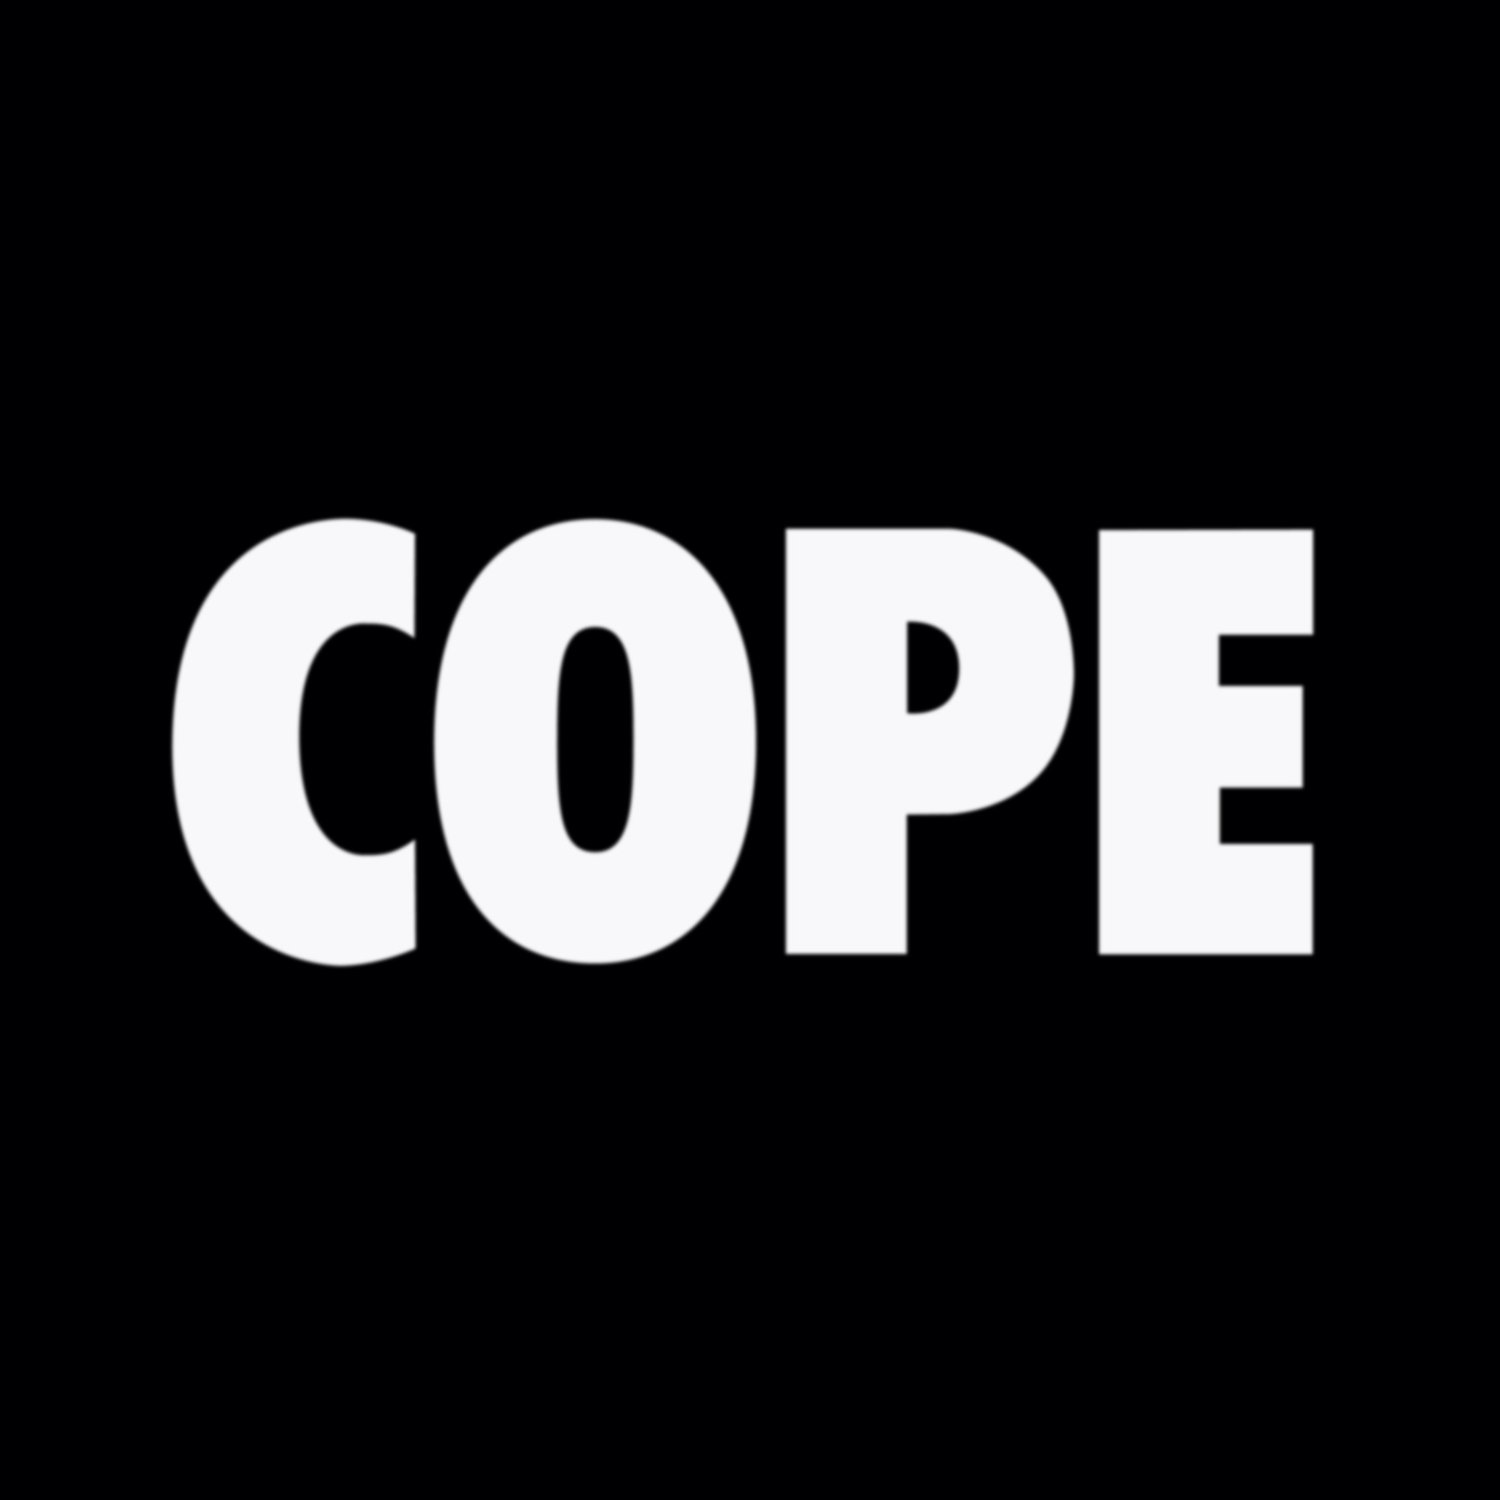 manchestra-orchestra-cope